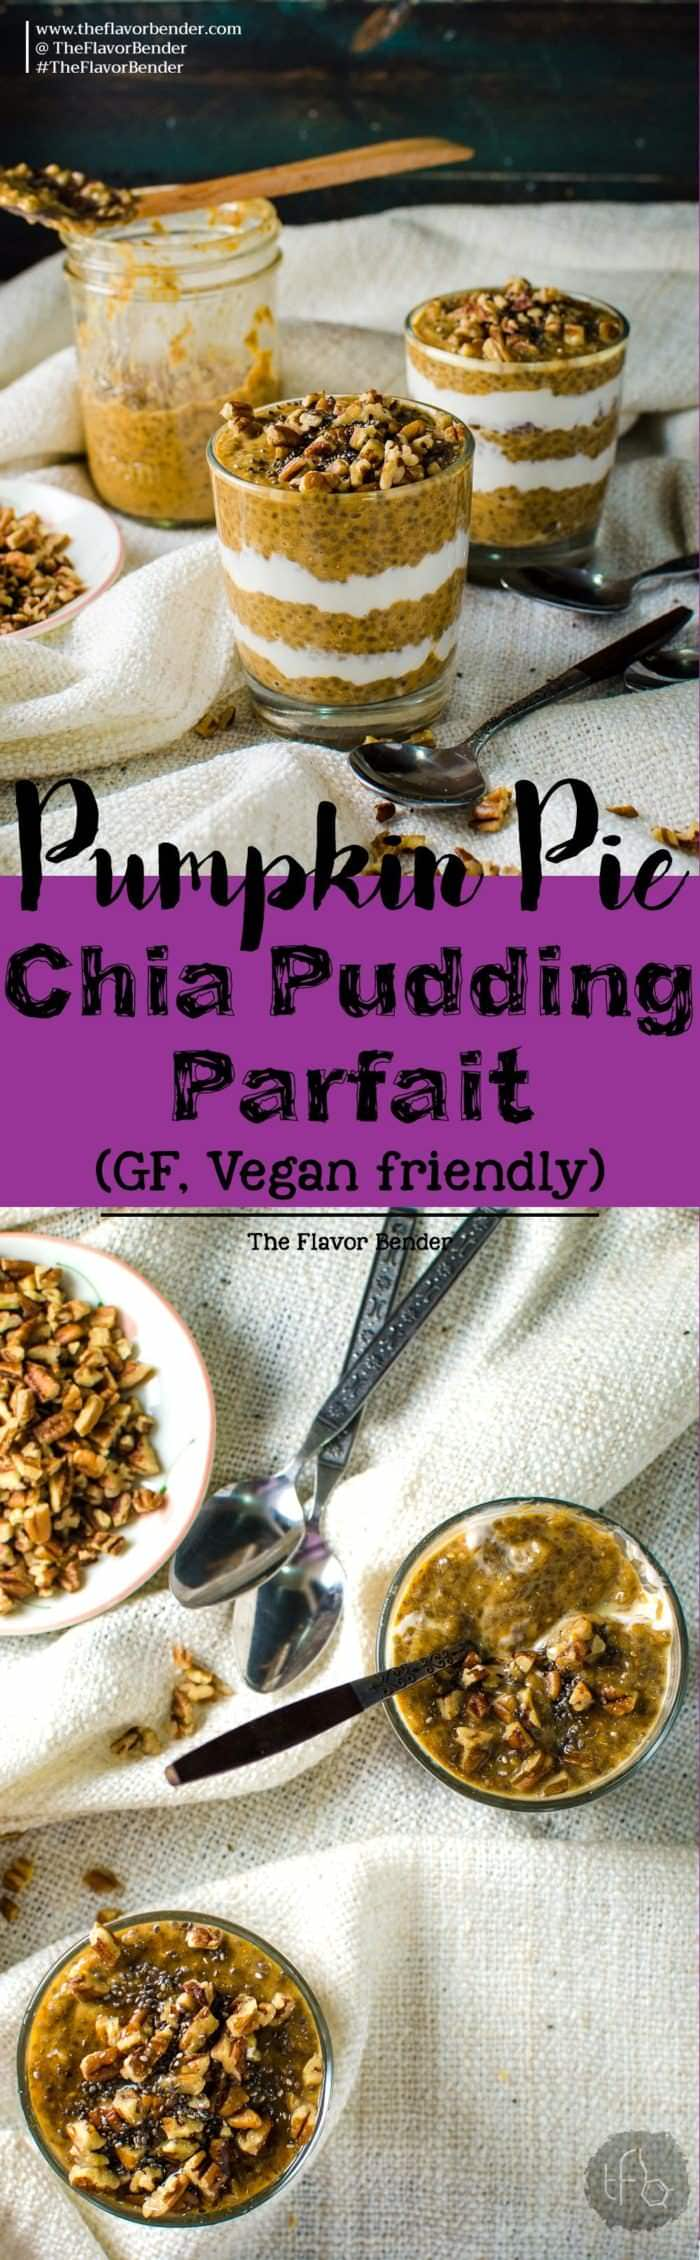 Overnight Pumpkin Pie Chia Pudding Parfait - the ultimate make-ahead, healthy, delicious breakfast! Full of fiber, protein and all the cozy flavors of Fall, the holidays and pumpkin pie, this parfait is gluten free, paleo-friendly and vegan friendly.